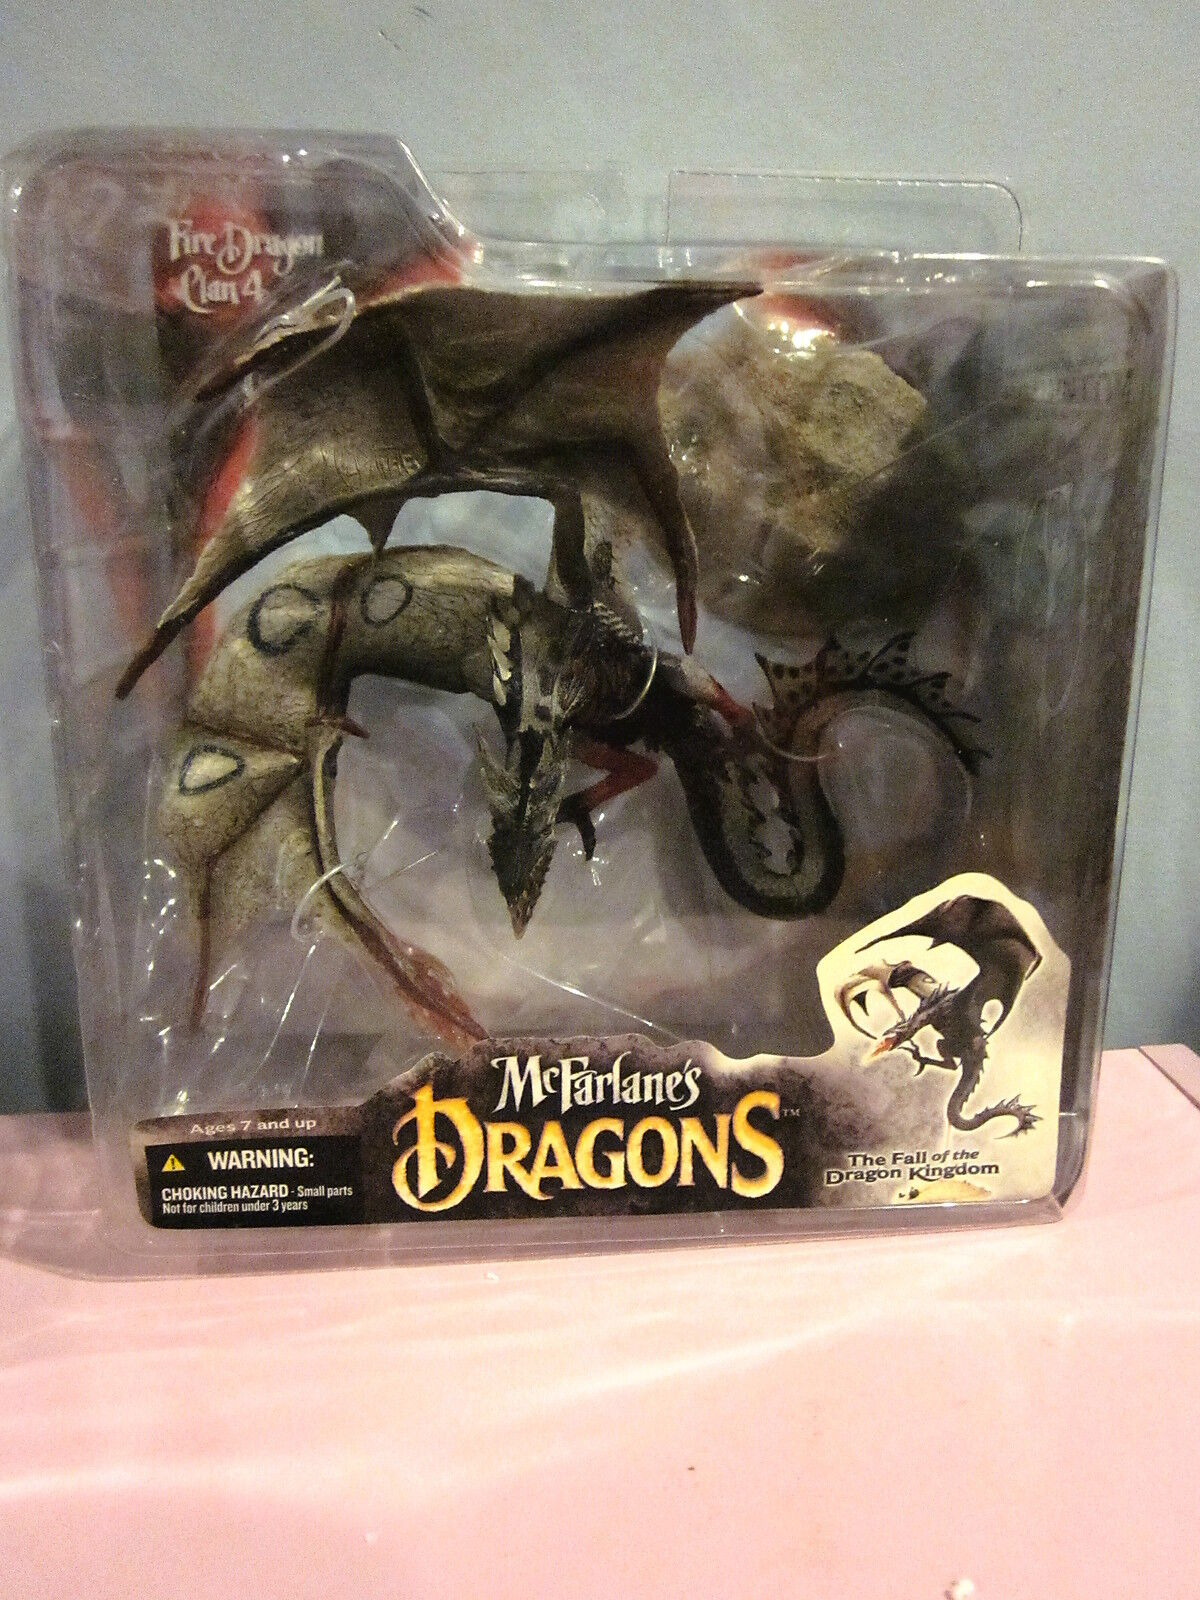 McFarlane's Dragons 2006 Fire Dragon Clan 4